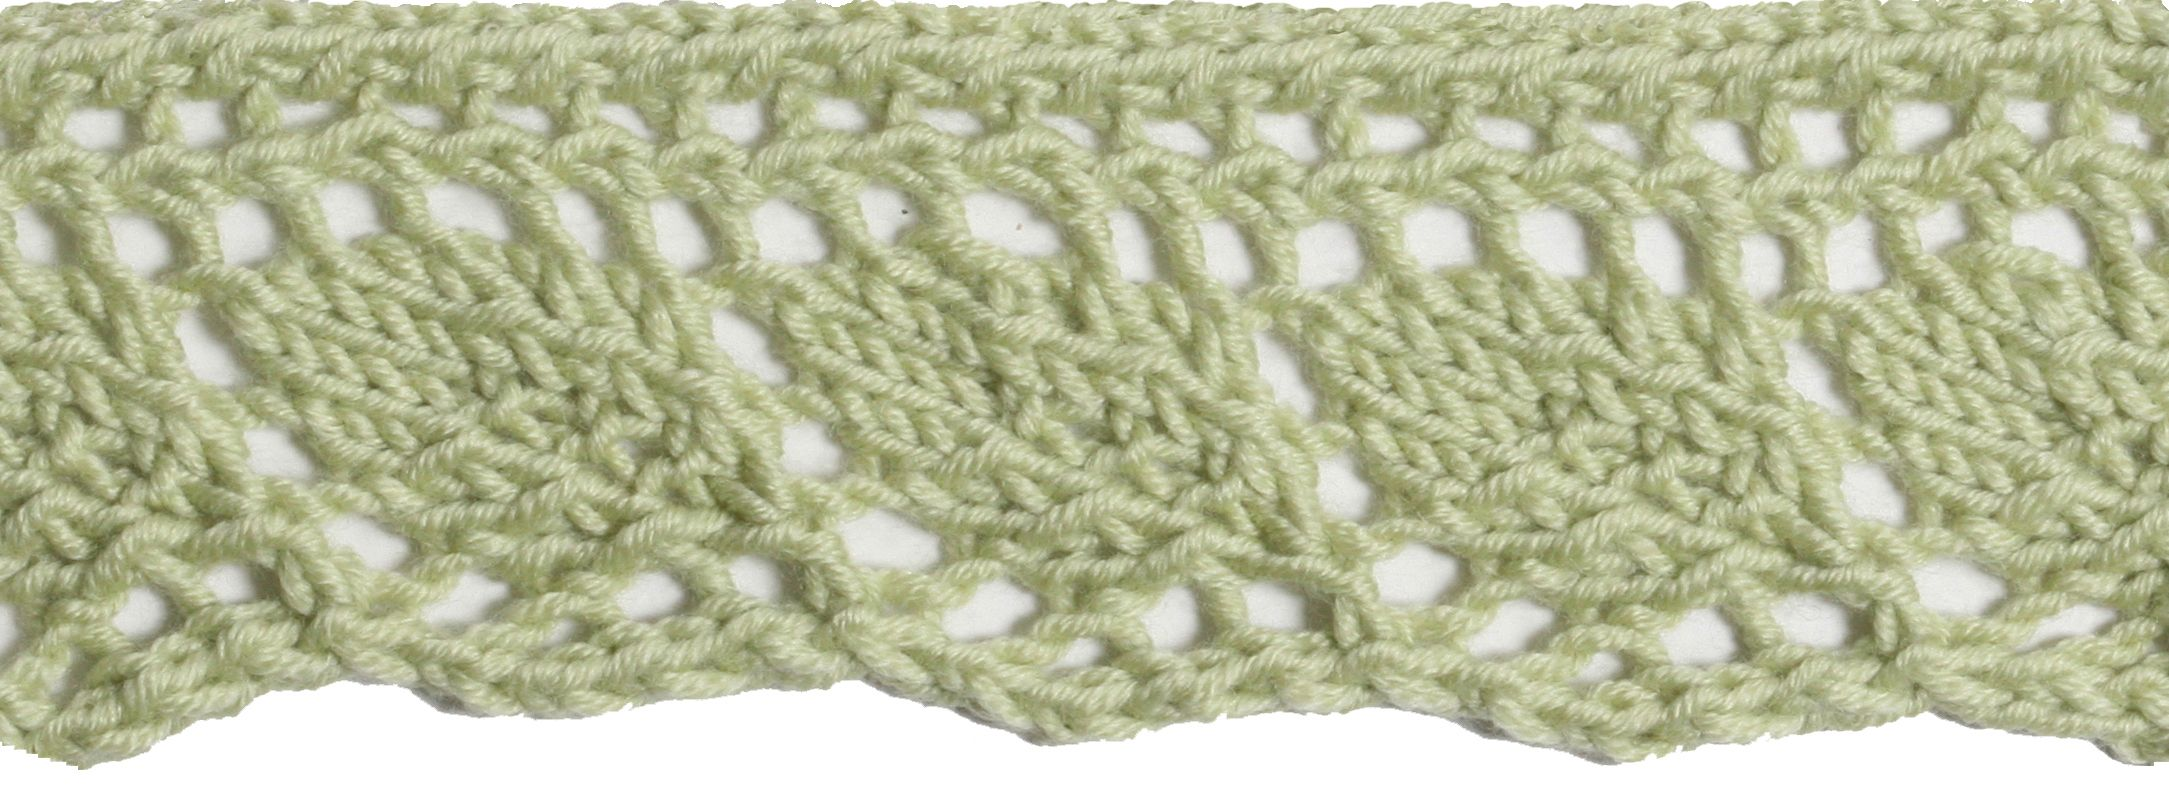 Lacy Leaf Edging (With images) | Knitting stitches, Knit ...